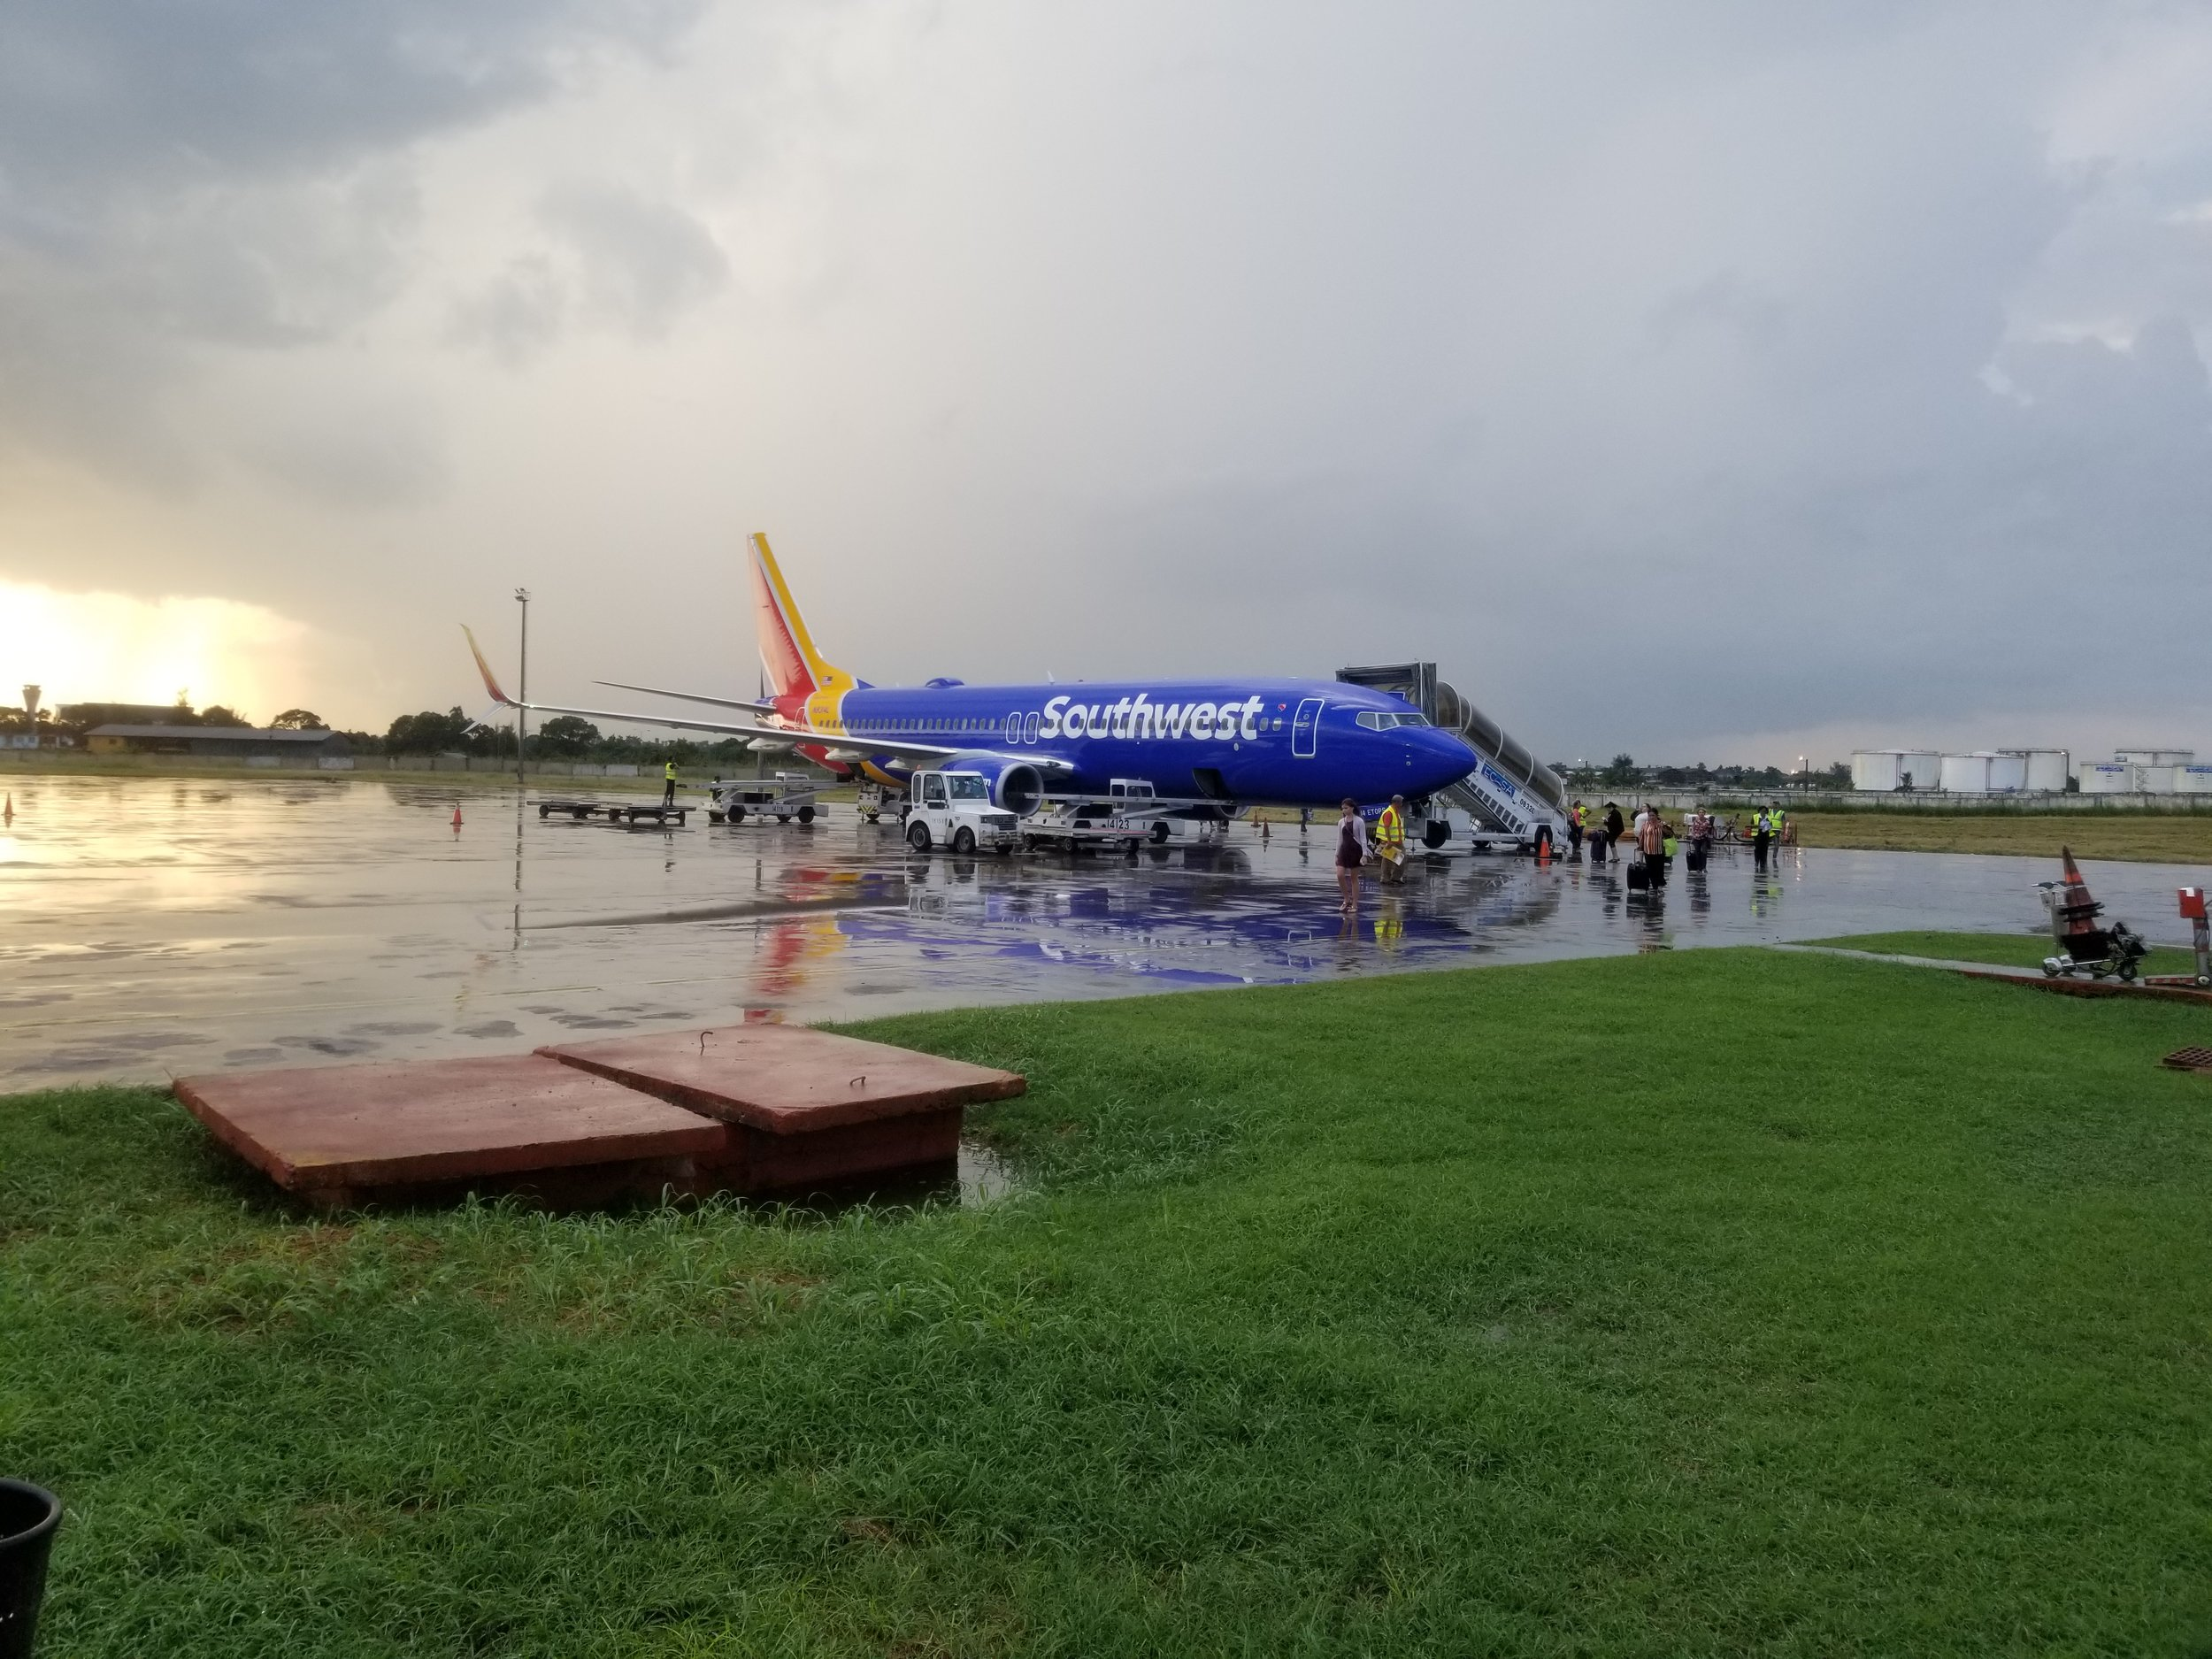 Southwest Airlines jet that brough me to Havana